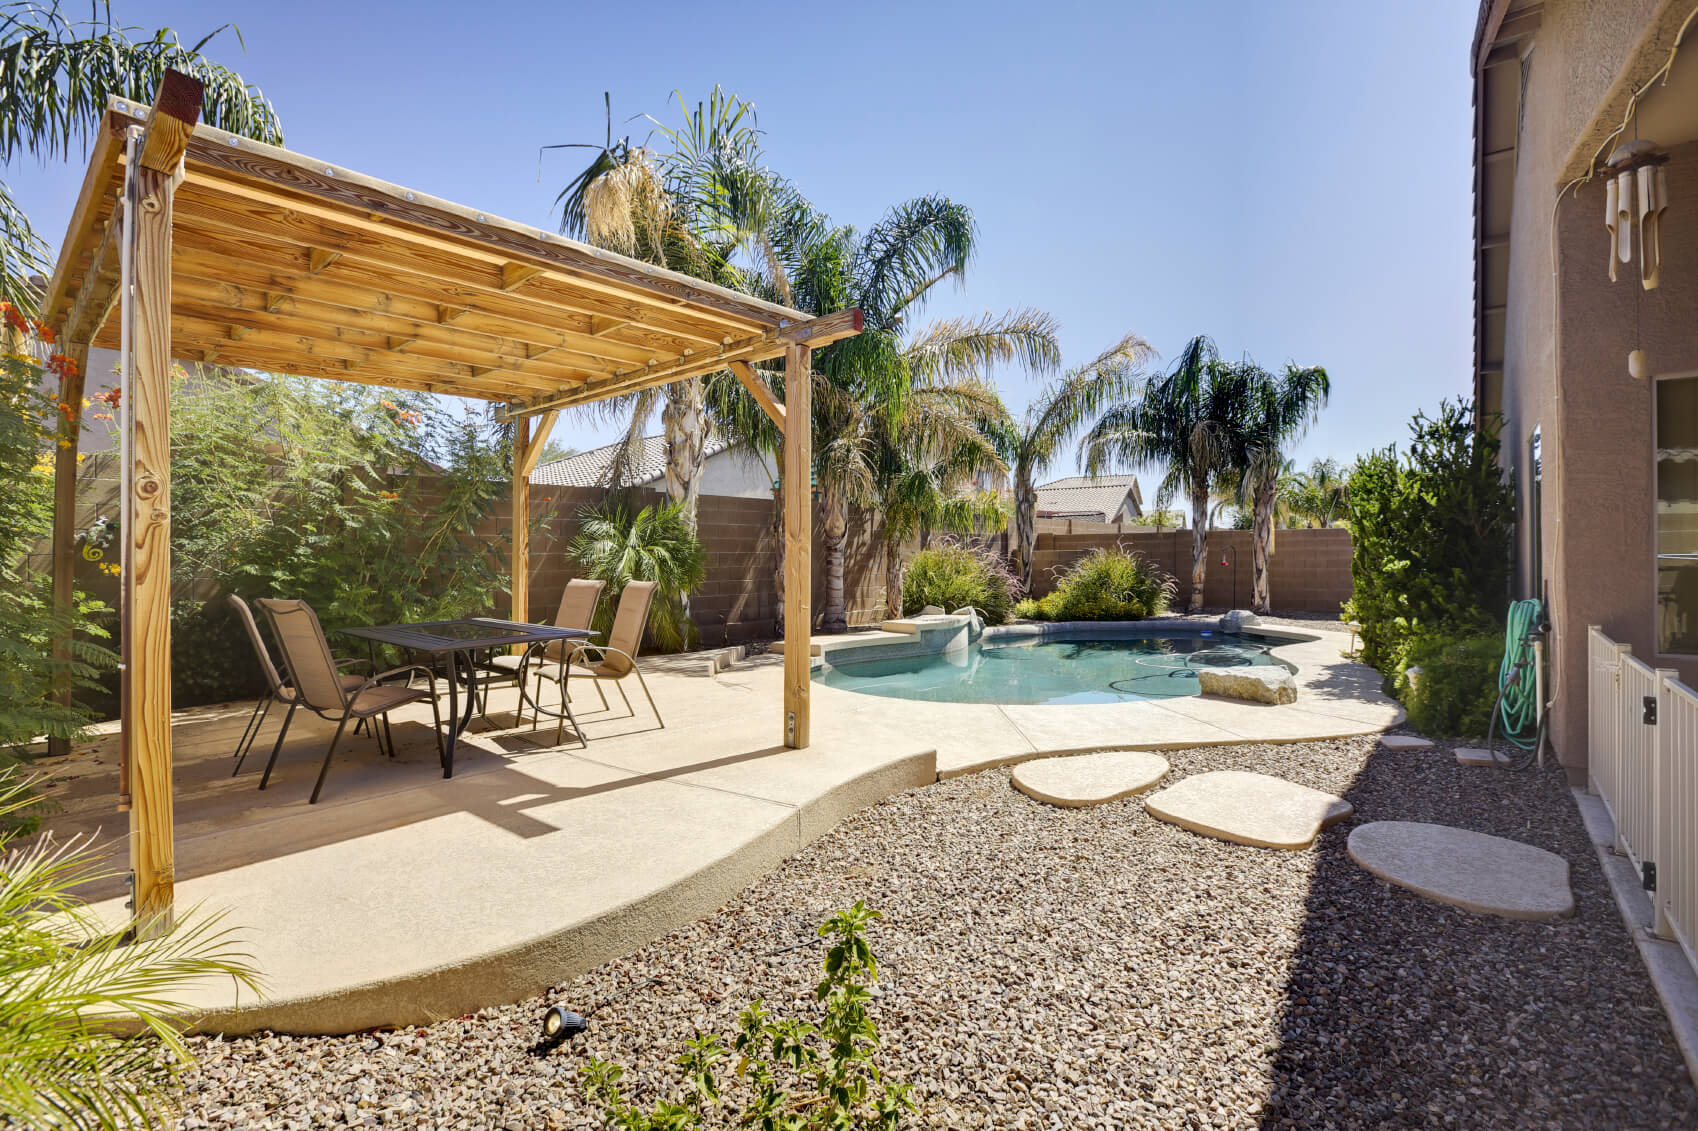 Best Patios in Phoenix | Pergola Designs for Shade & More | New Image